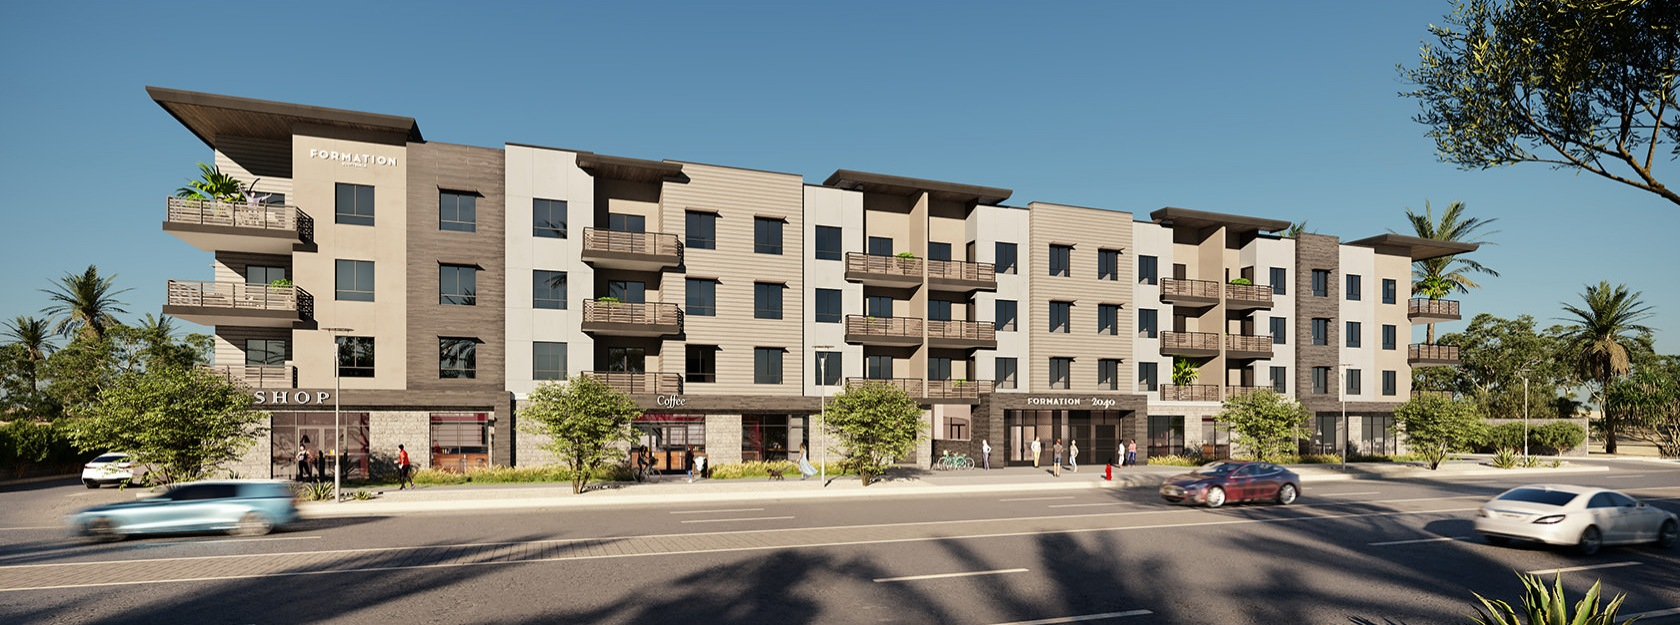 exterior rendering of Formation apartments